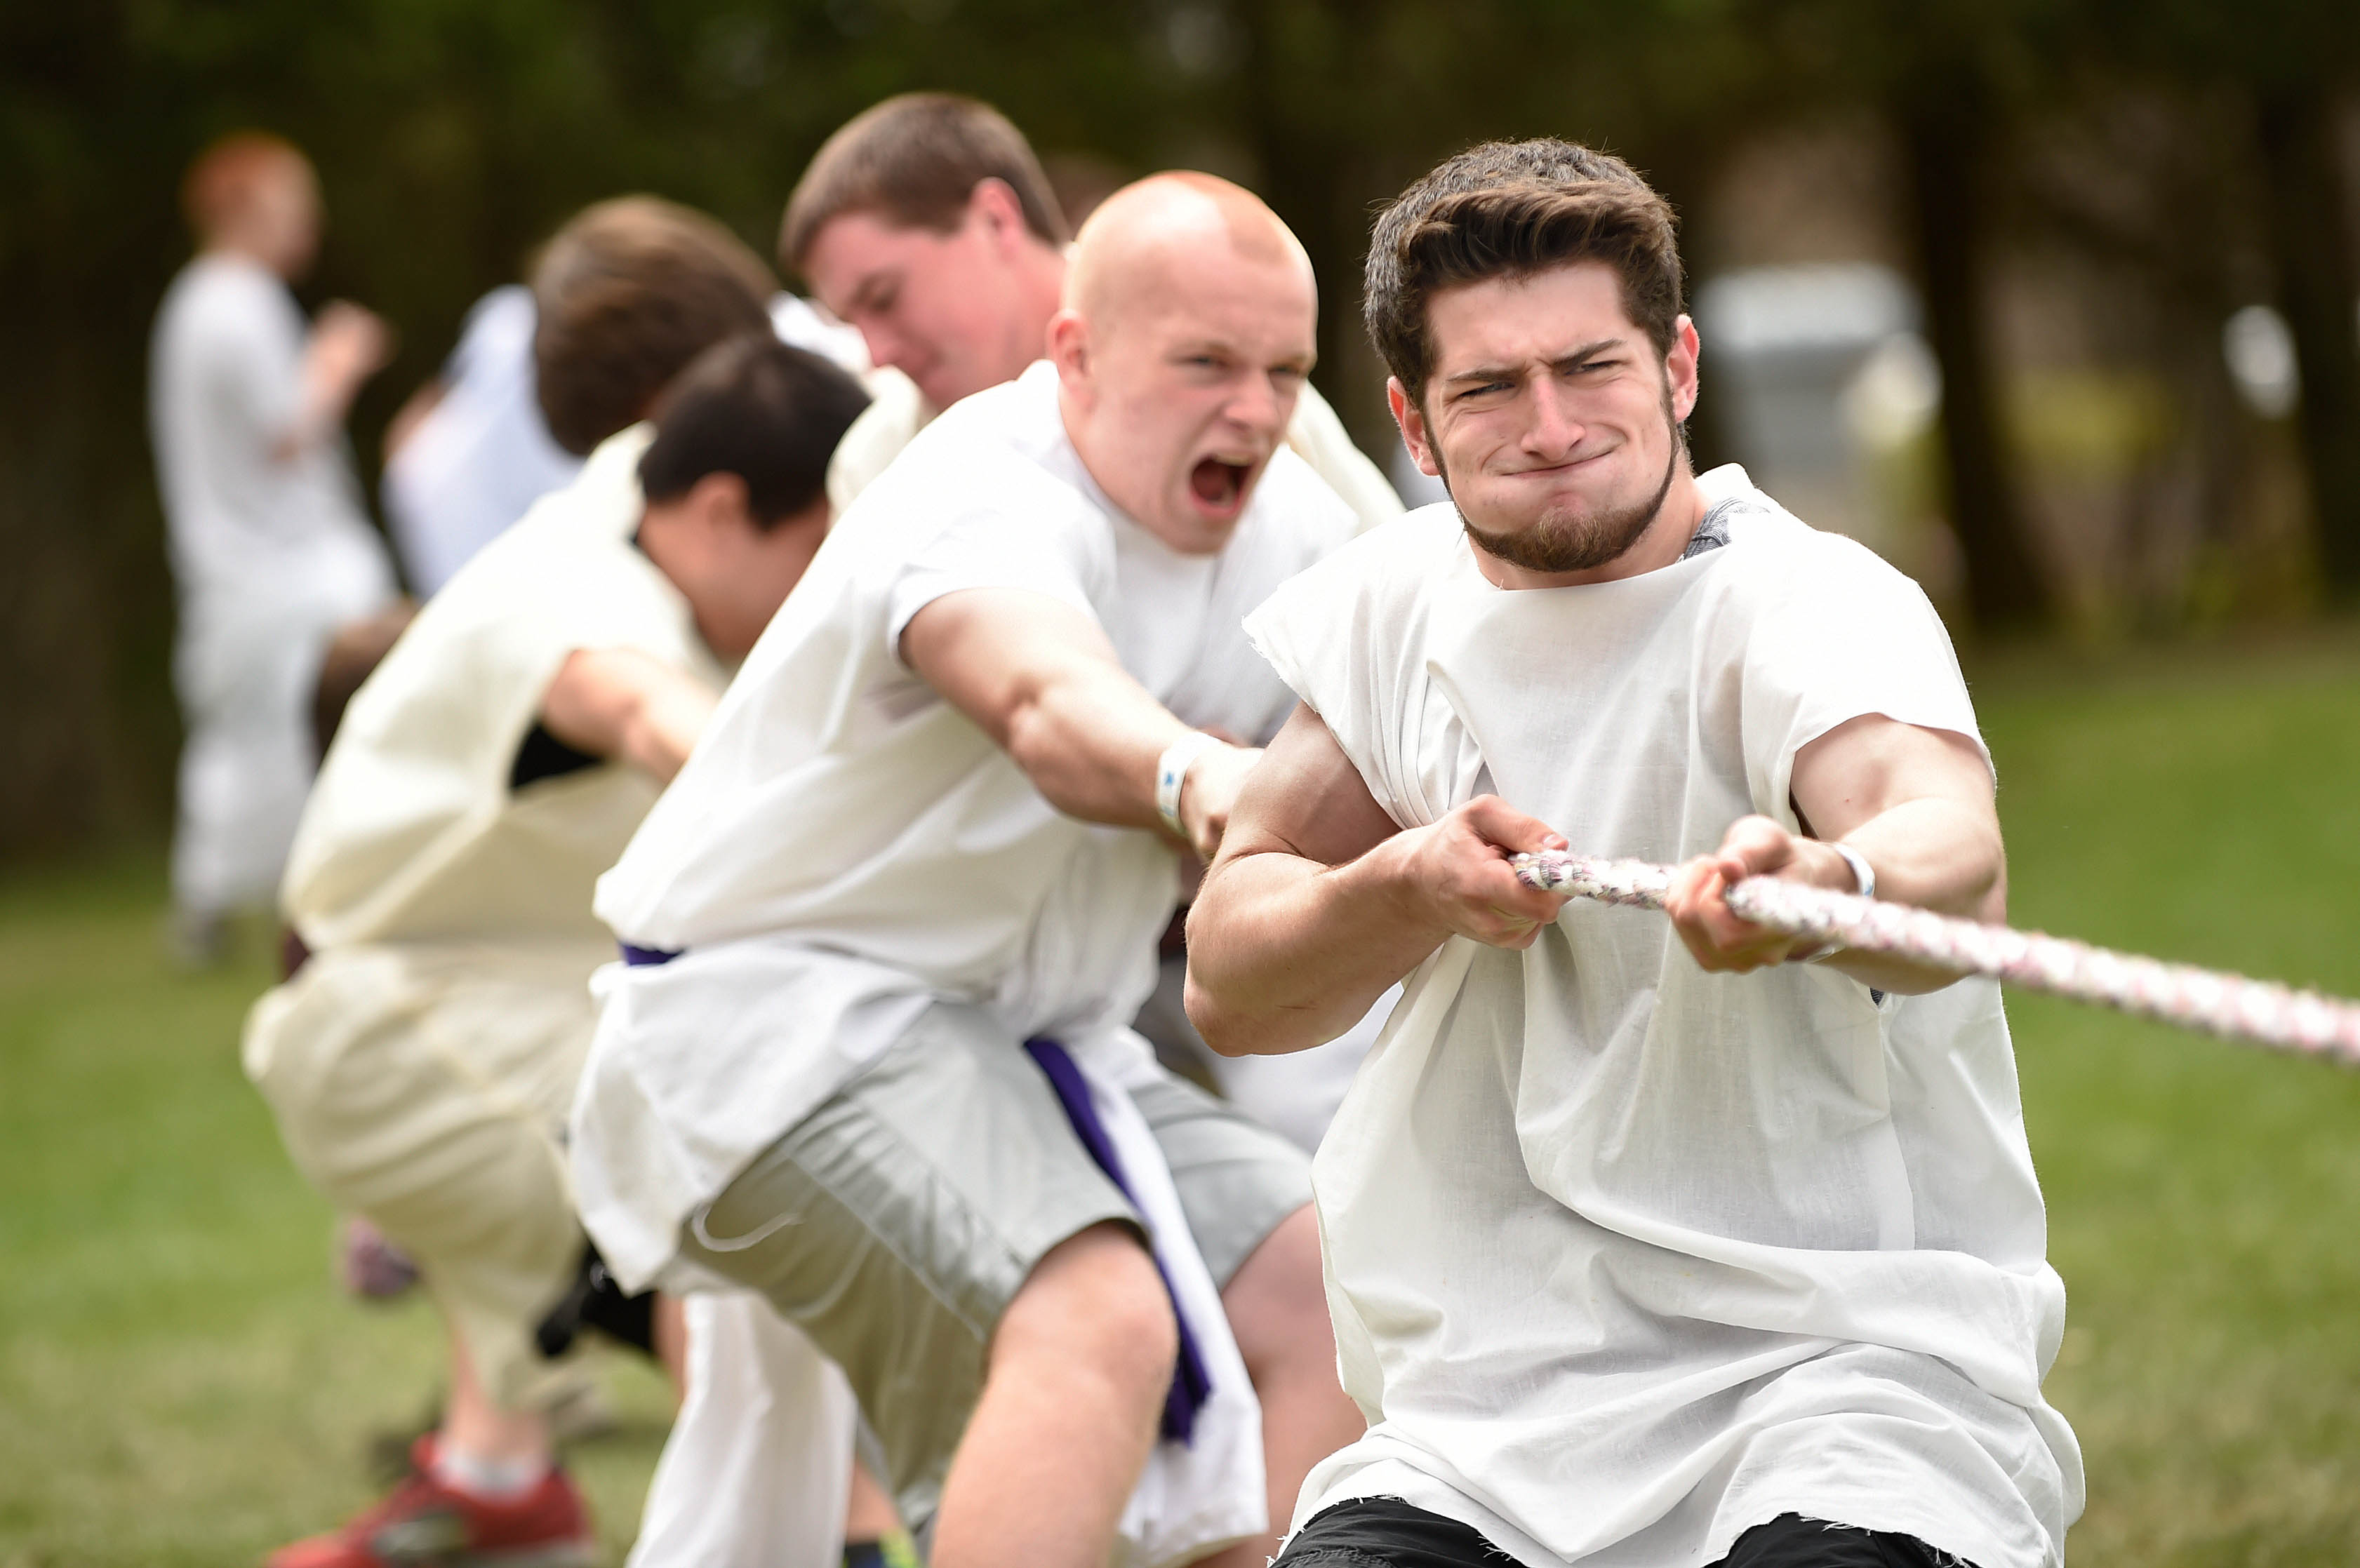 PROSPECT 05/01/15 Dressed in togas, Mark Zebrowski (right) pulls the rope with classmate Luke Devine (second from right) as they fight against Stratford High School in a tug-of war contest at the 34th annual Connecticut State Latin Day at the Holiday Hill resort in Prospect Friday. Latin students from fifty-two middle and high schools across Connecticut competed in academic and athletic contests throughout the day. Rocky Hill won this heat of the tug-of-war.  CLOE POISSON|cpoisson@courant.com